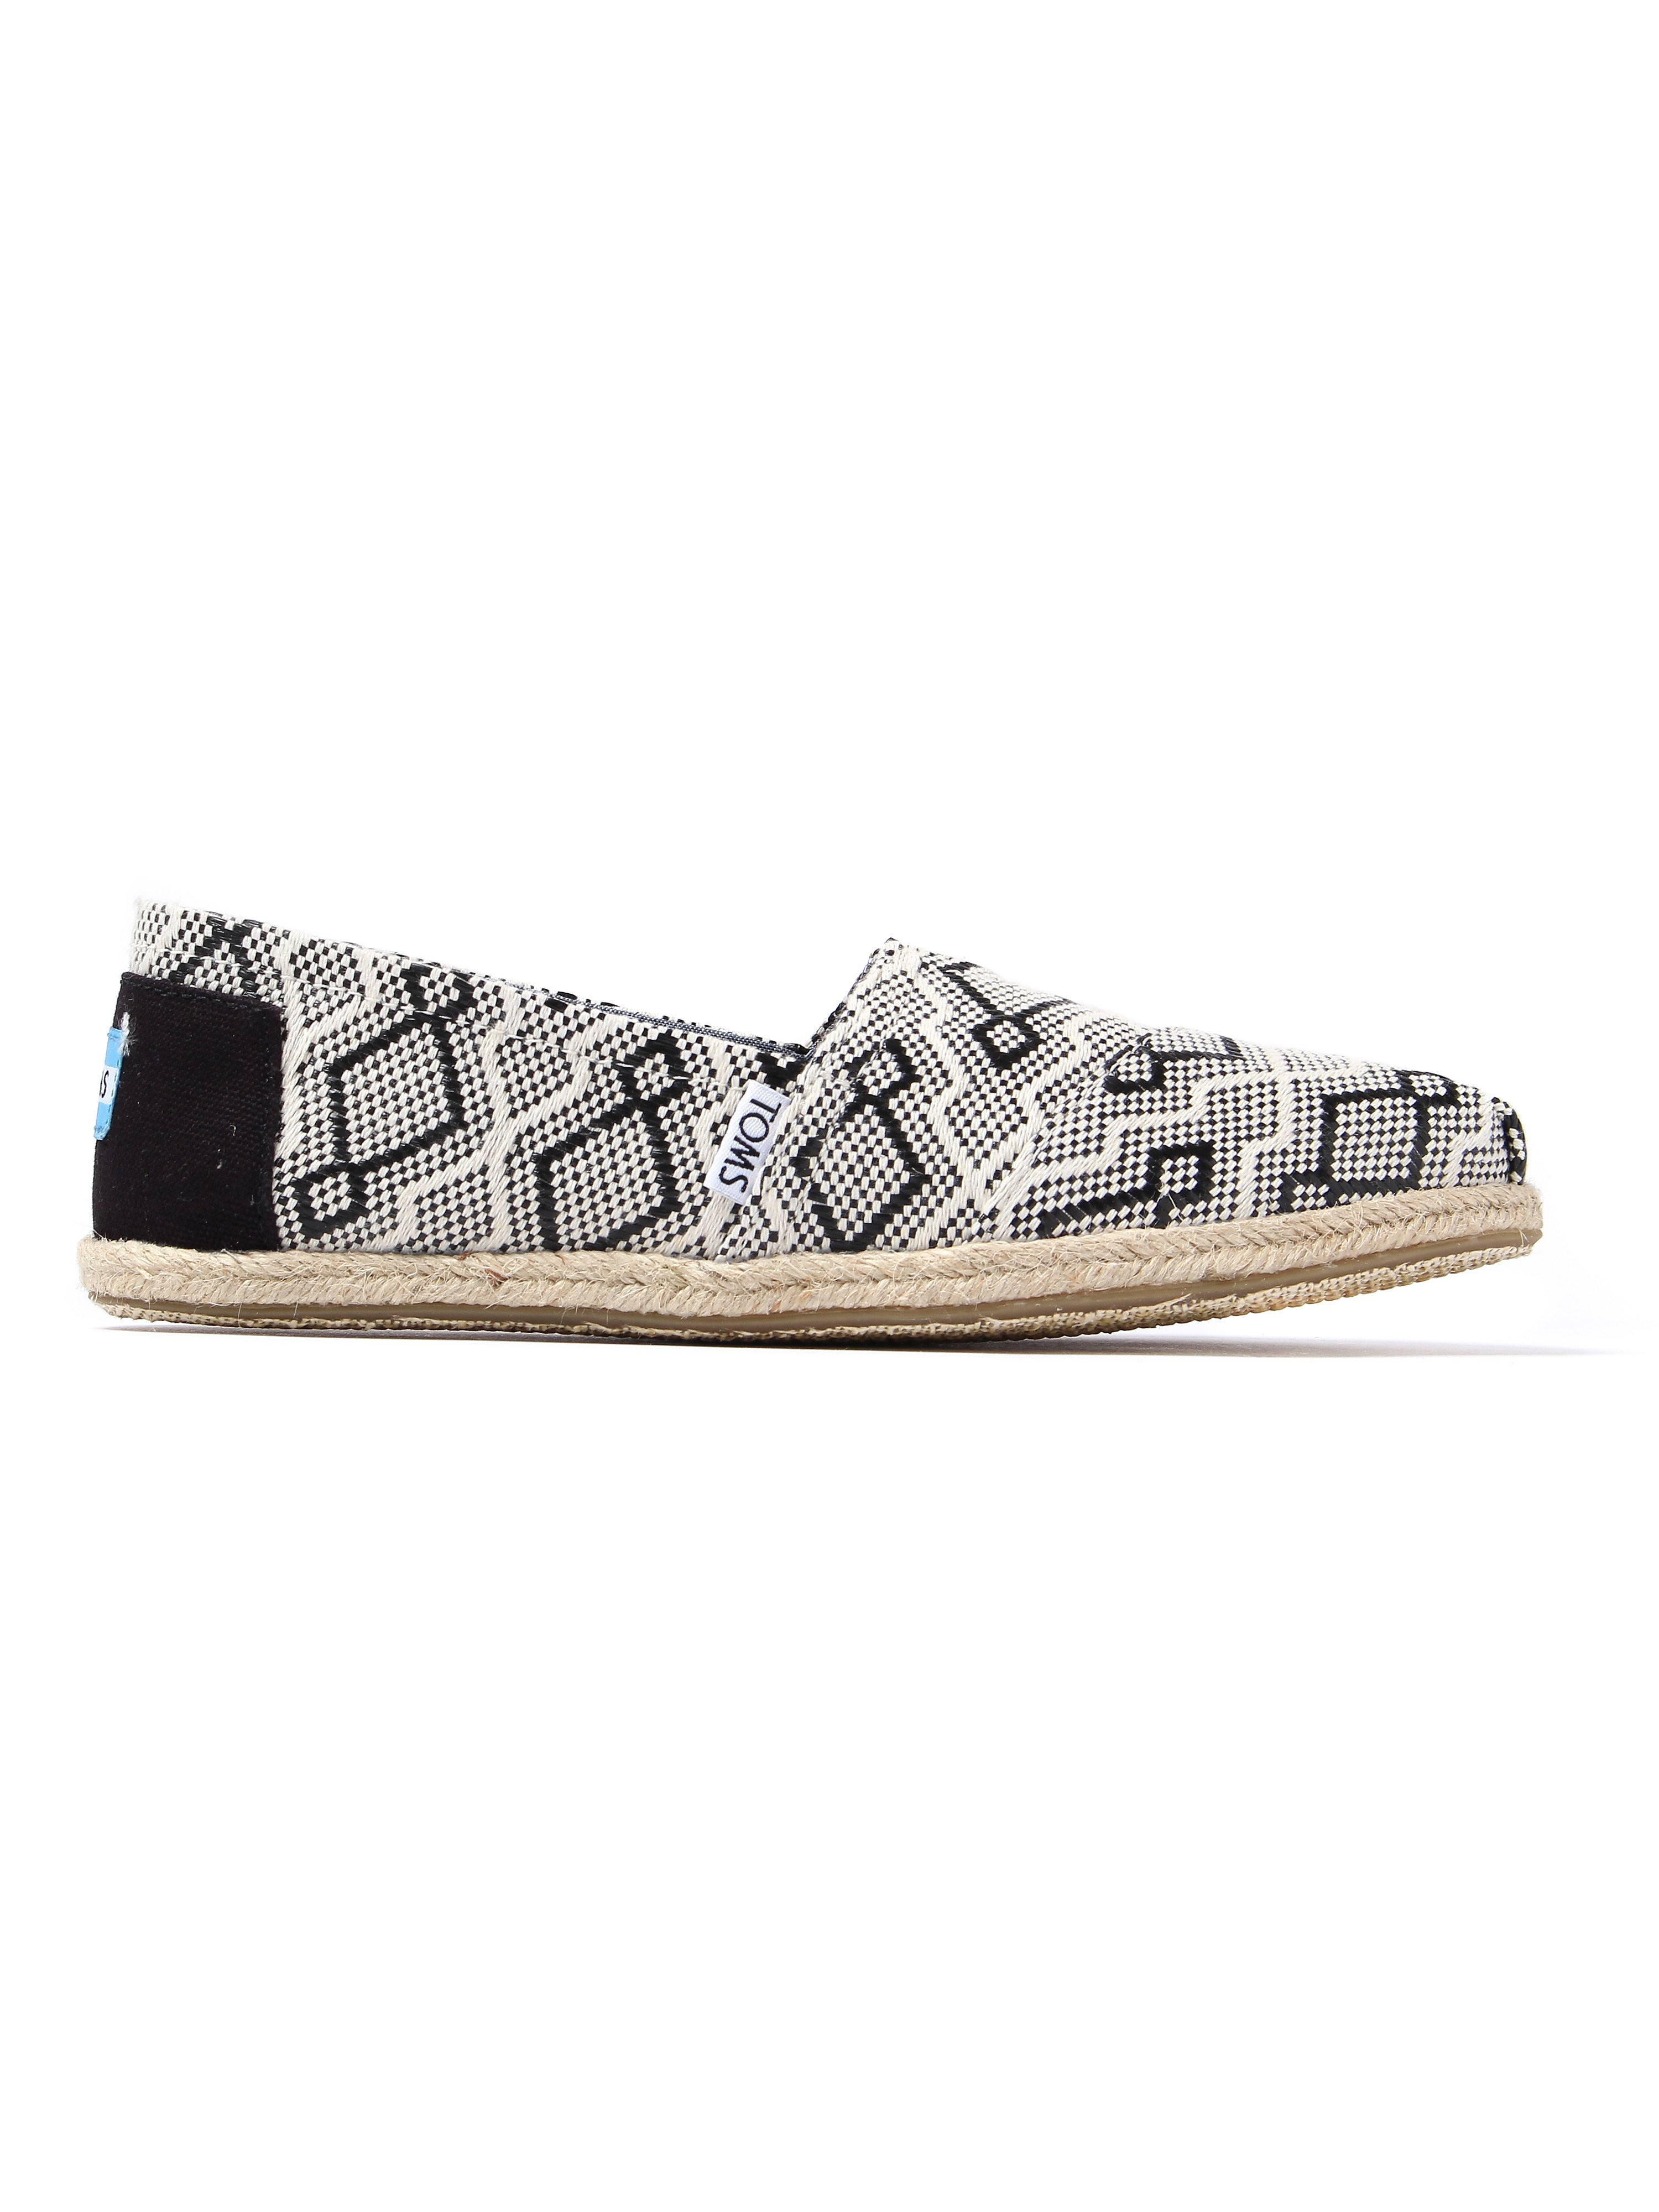 Toms Women's Classic Jacquard Rope Sole - Black